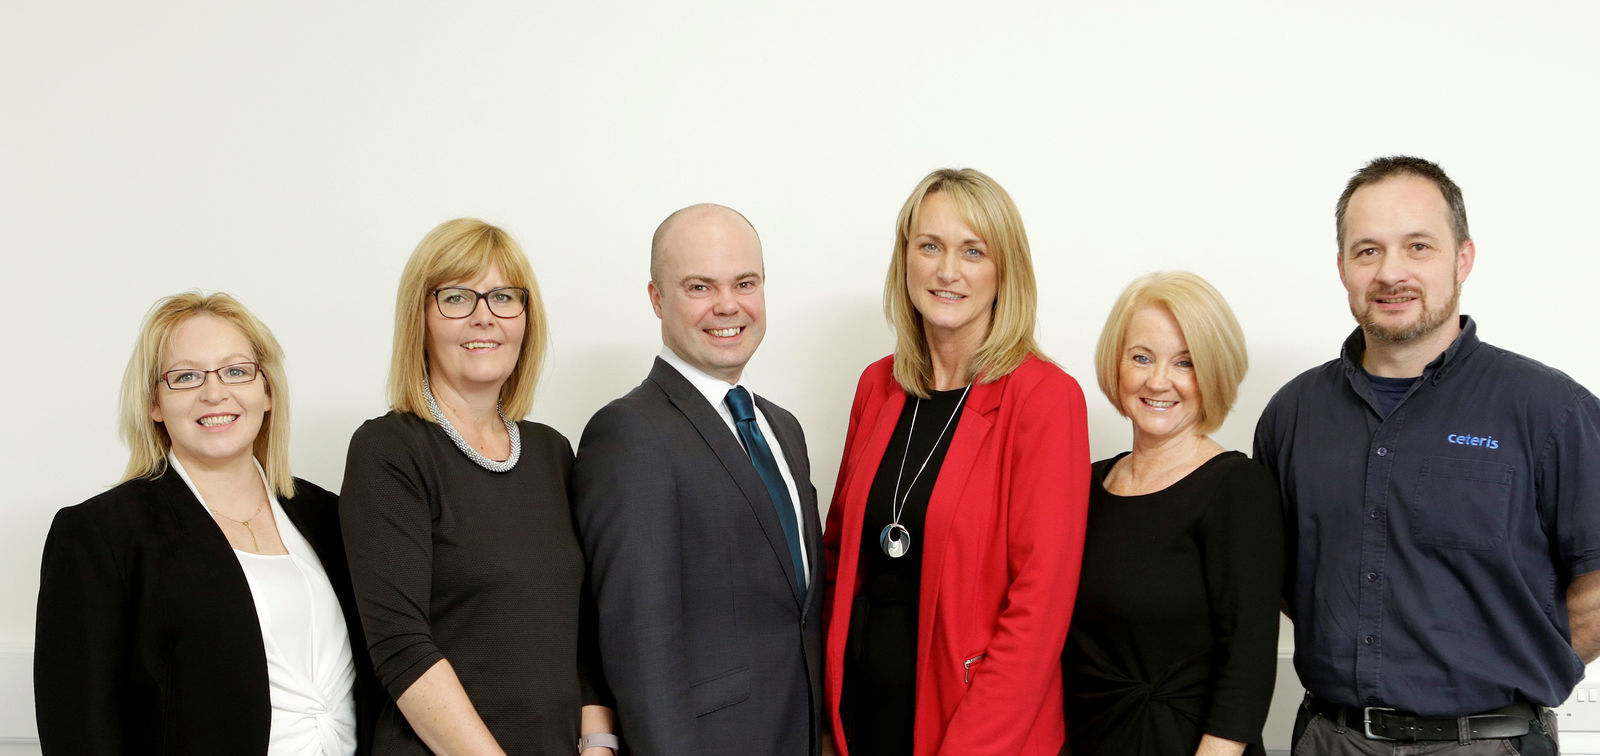 The in-house Ceteris Property team